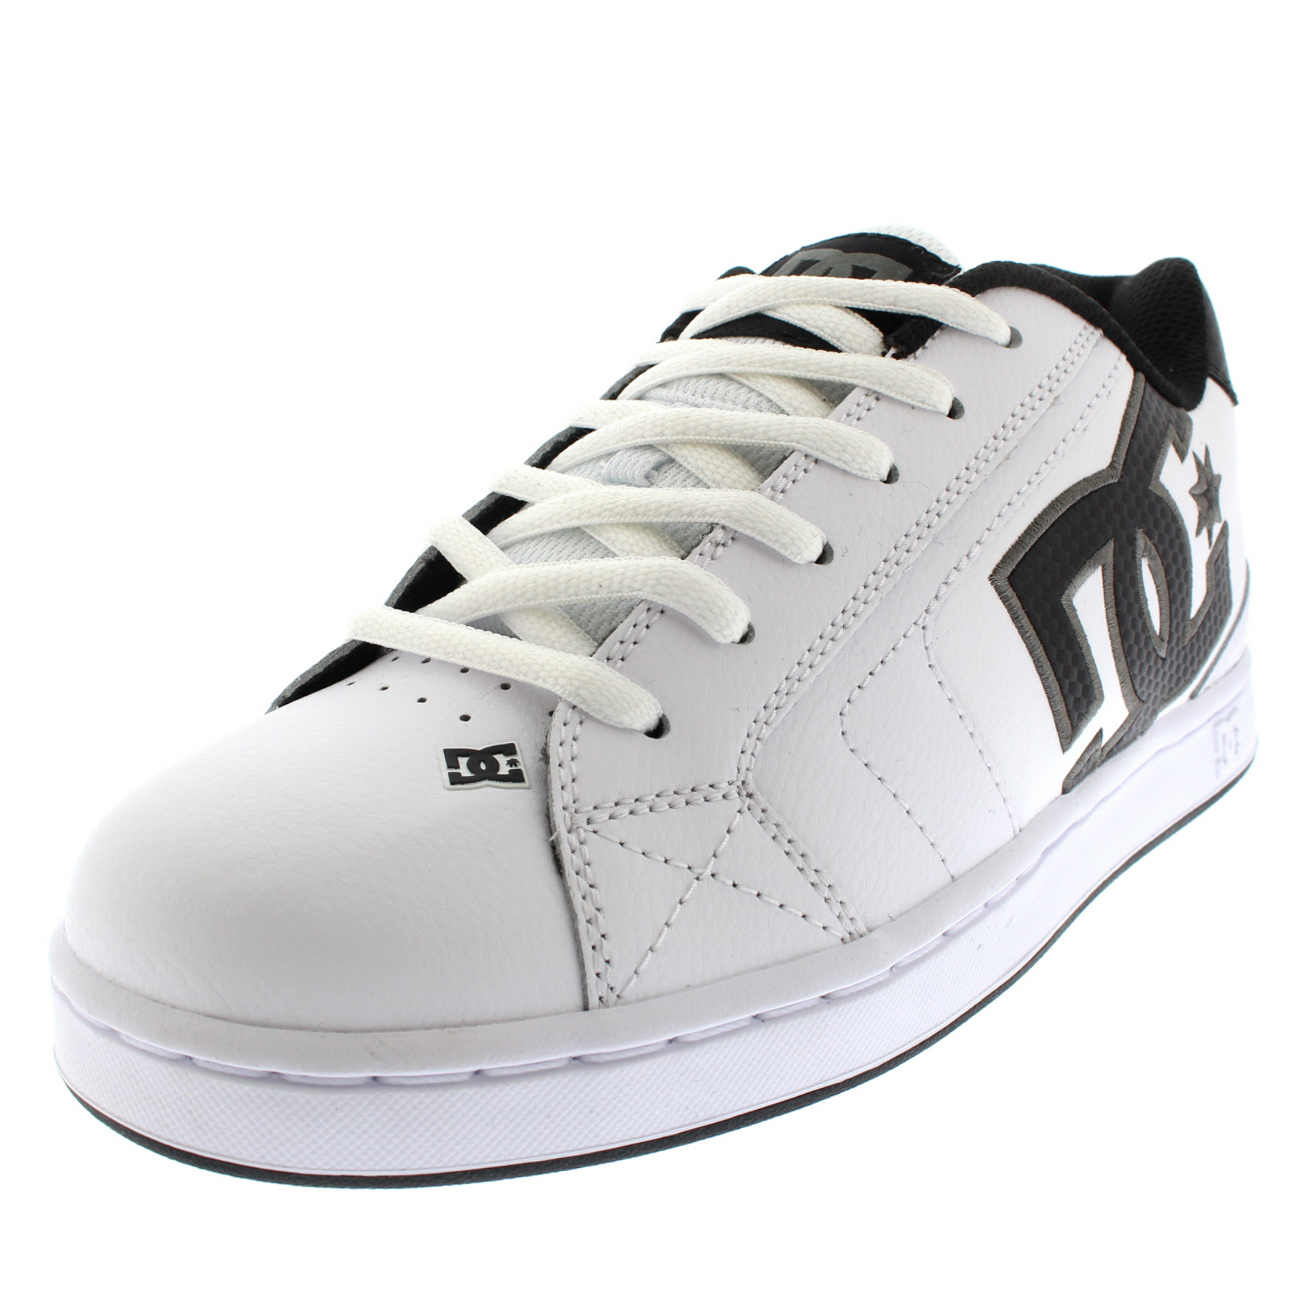 DC Shoes Net Leather